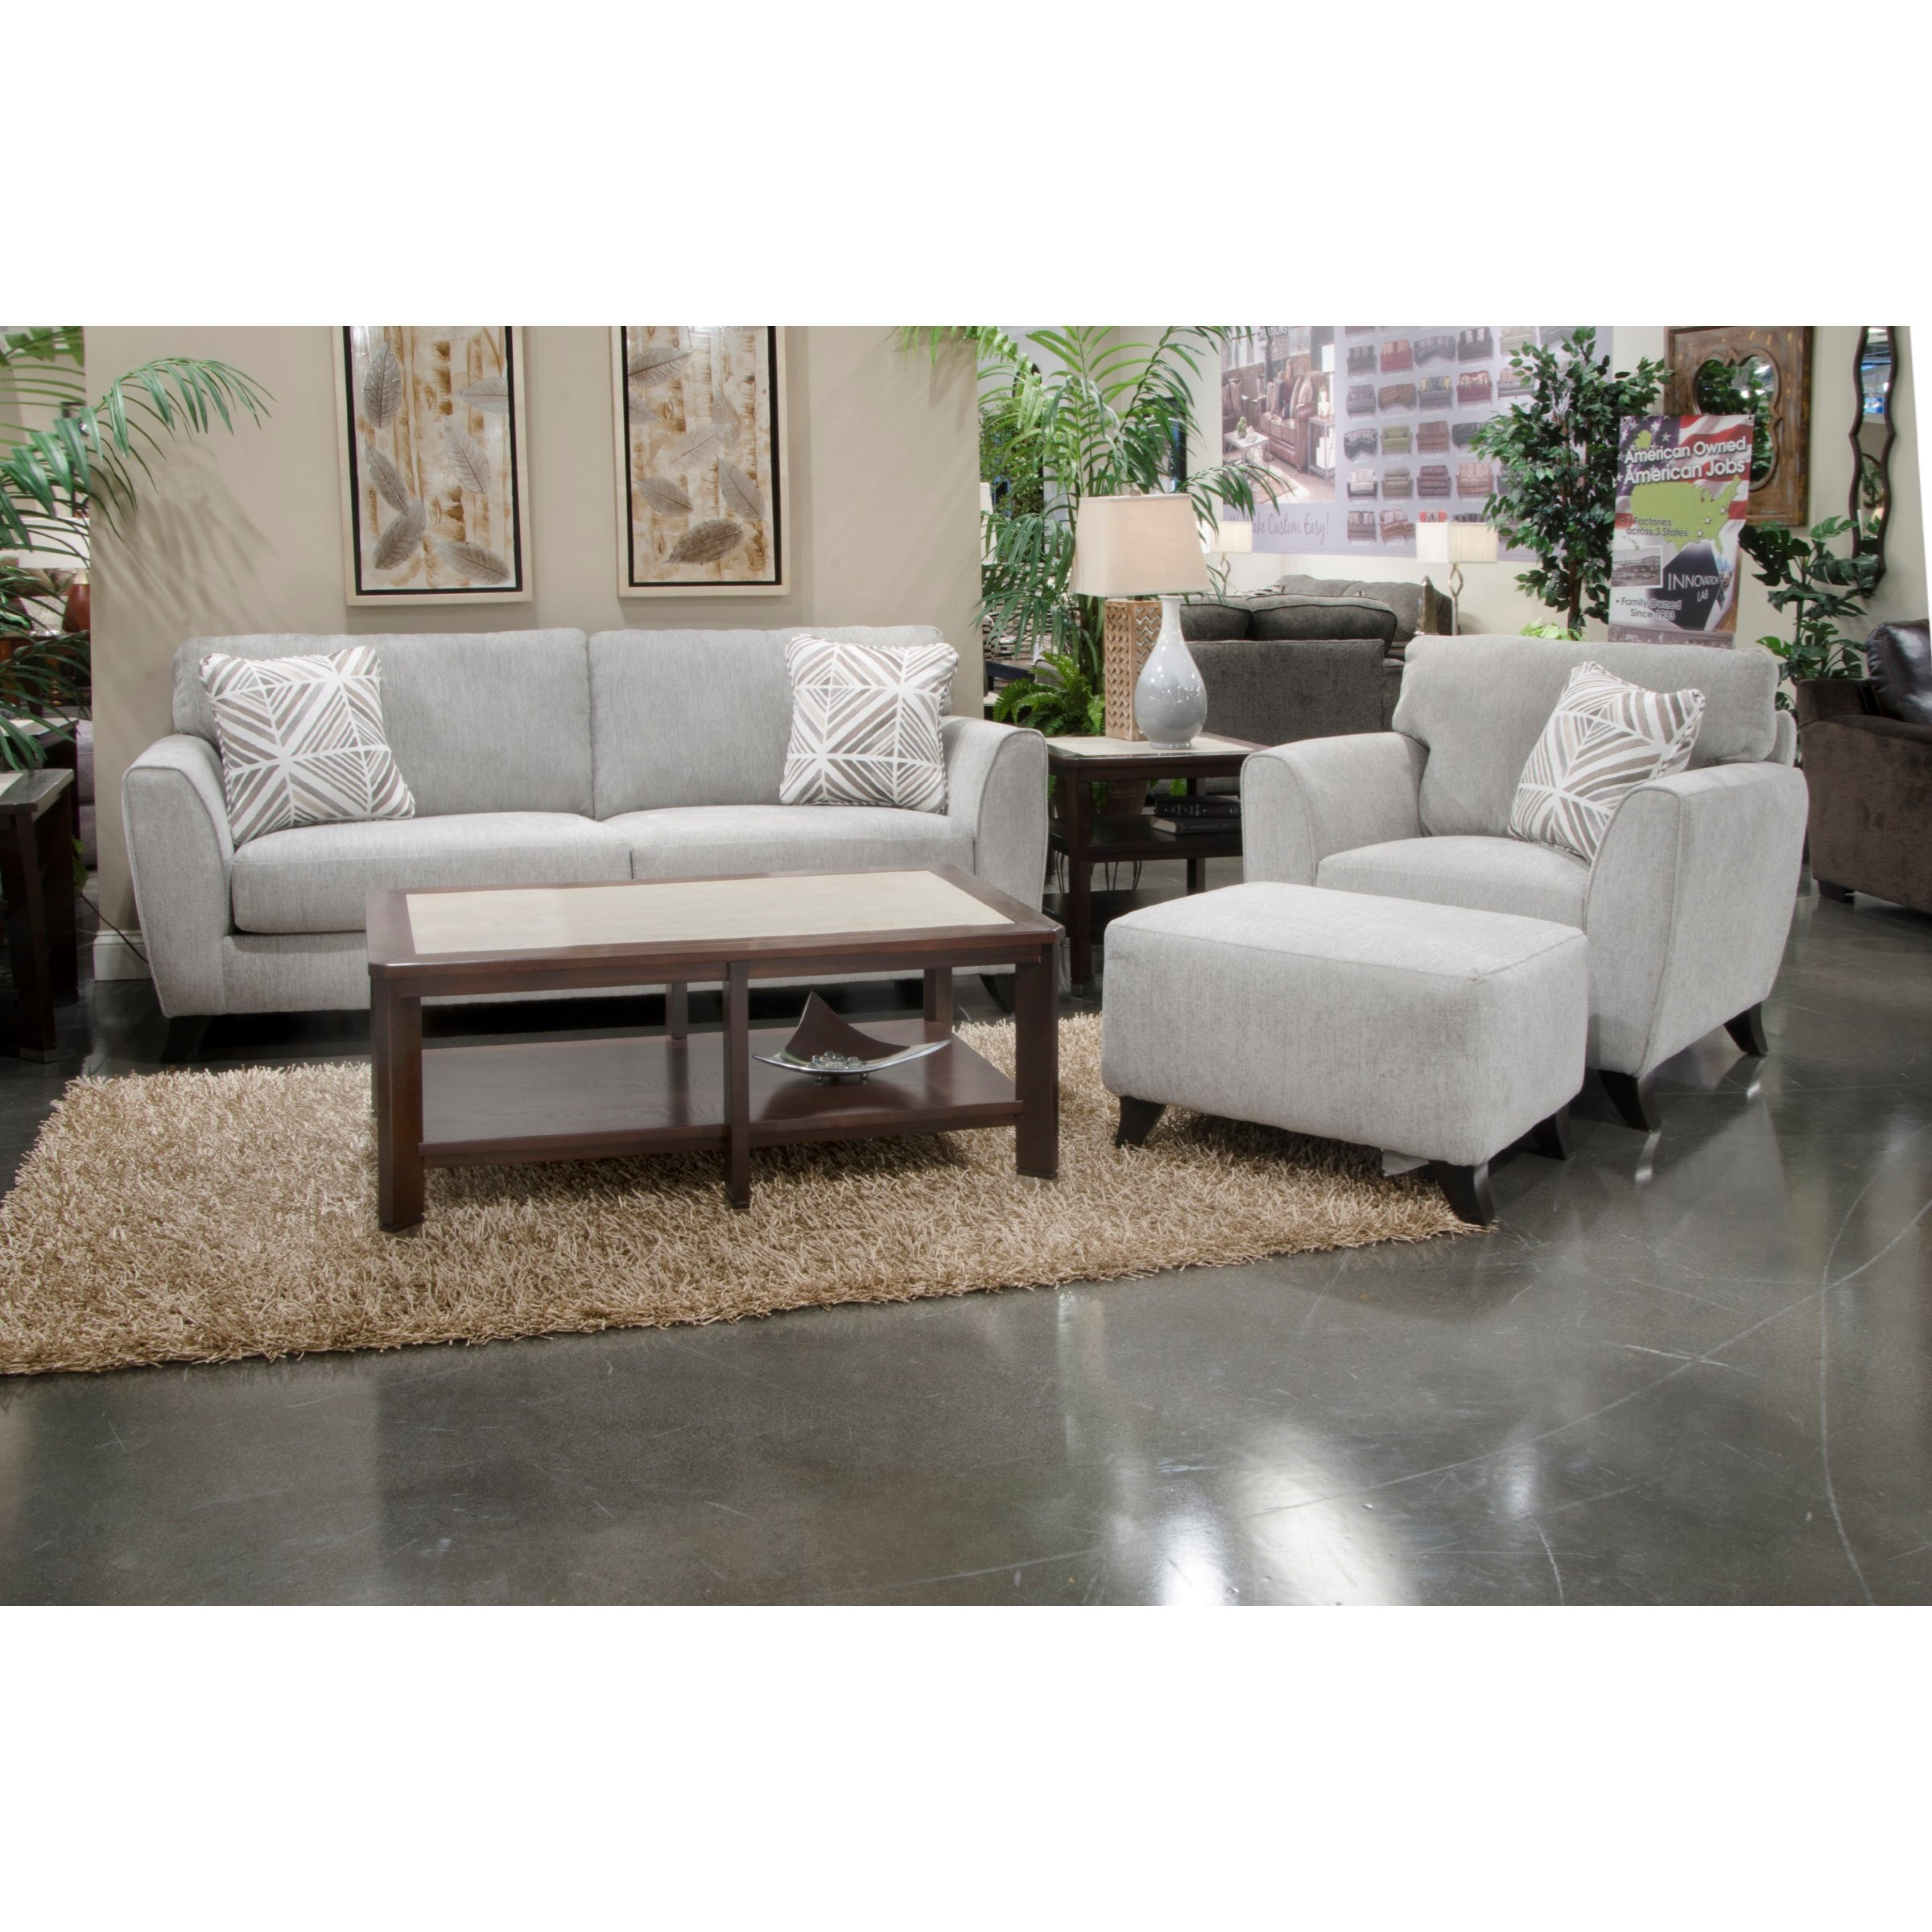 Pebbles Living Room Group by Jackson Furniture at EFO Furniture Outlet